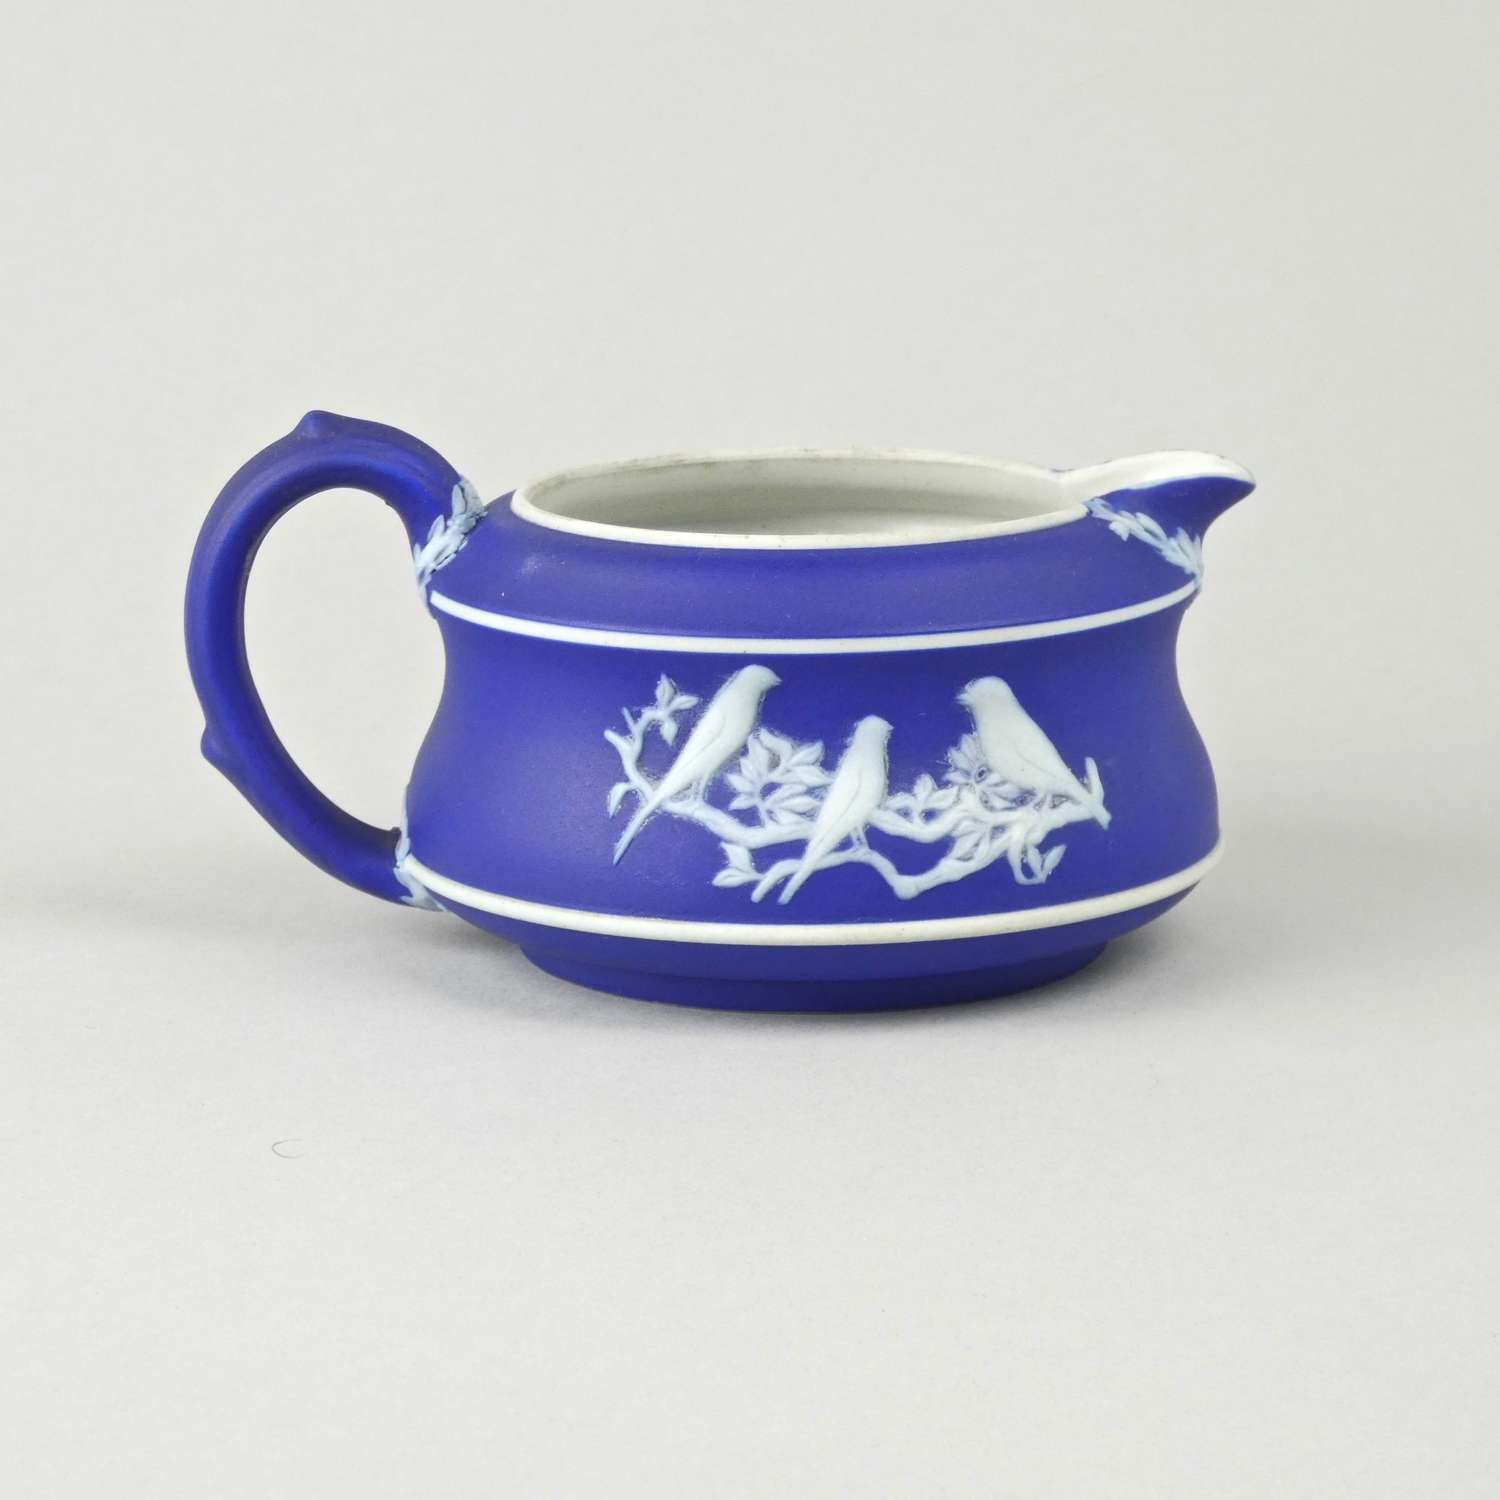 Wedgwood jug made for Caperns